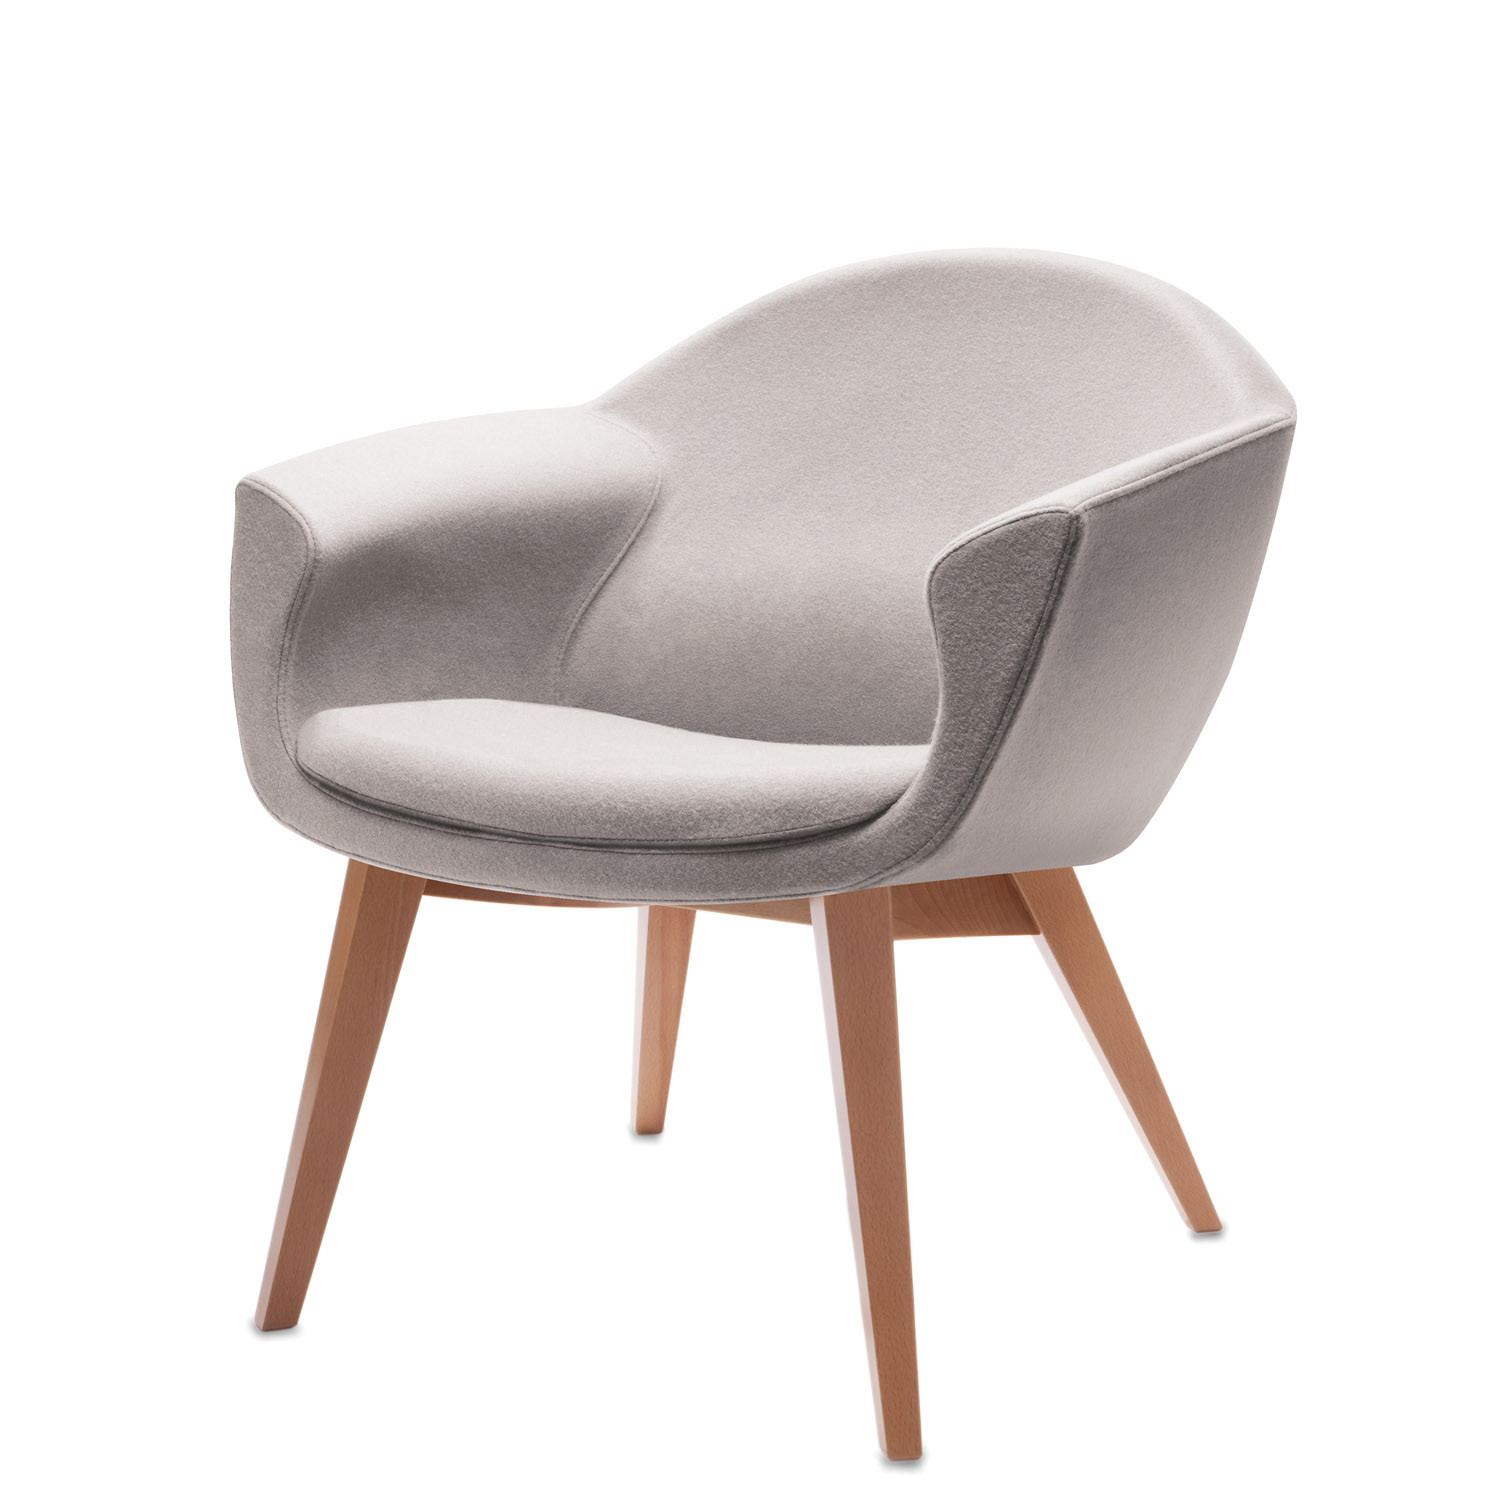 Mortimer Chair by Jones & Partners